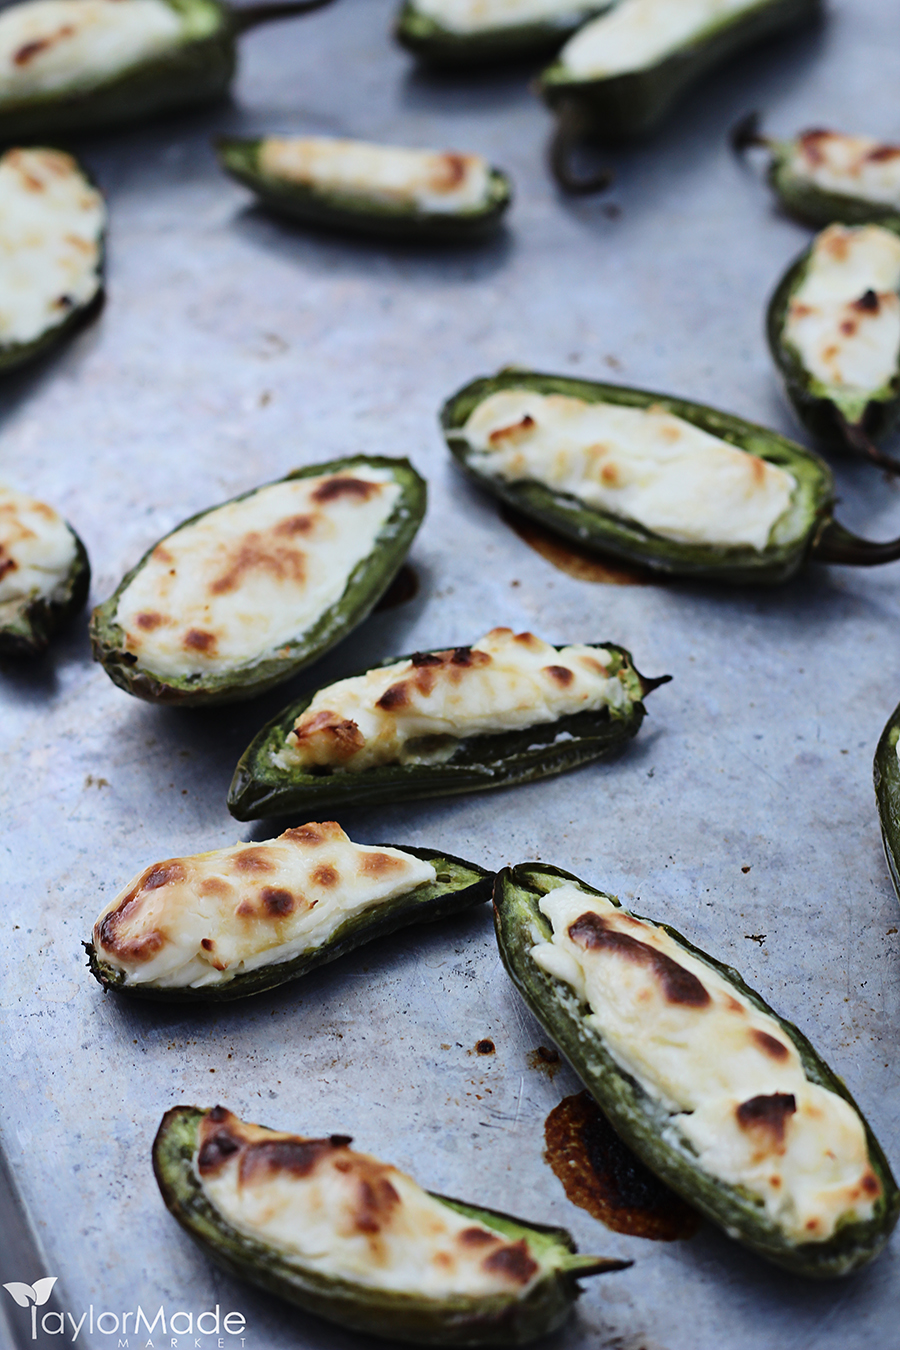 jalapeno stuffed and baked vertical